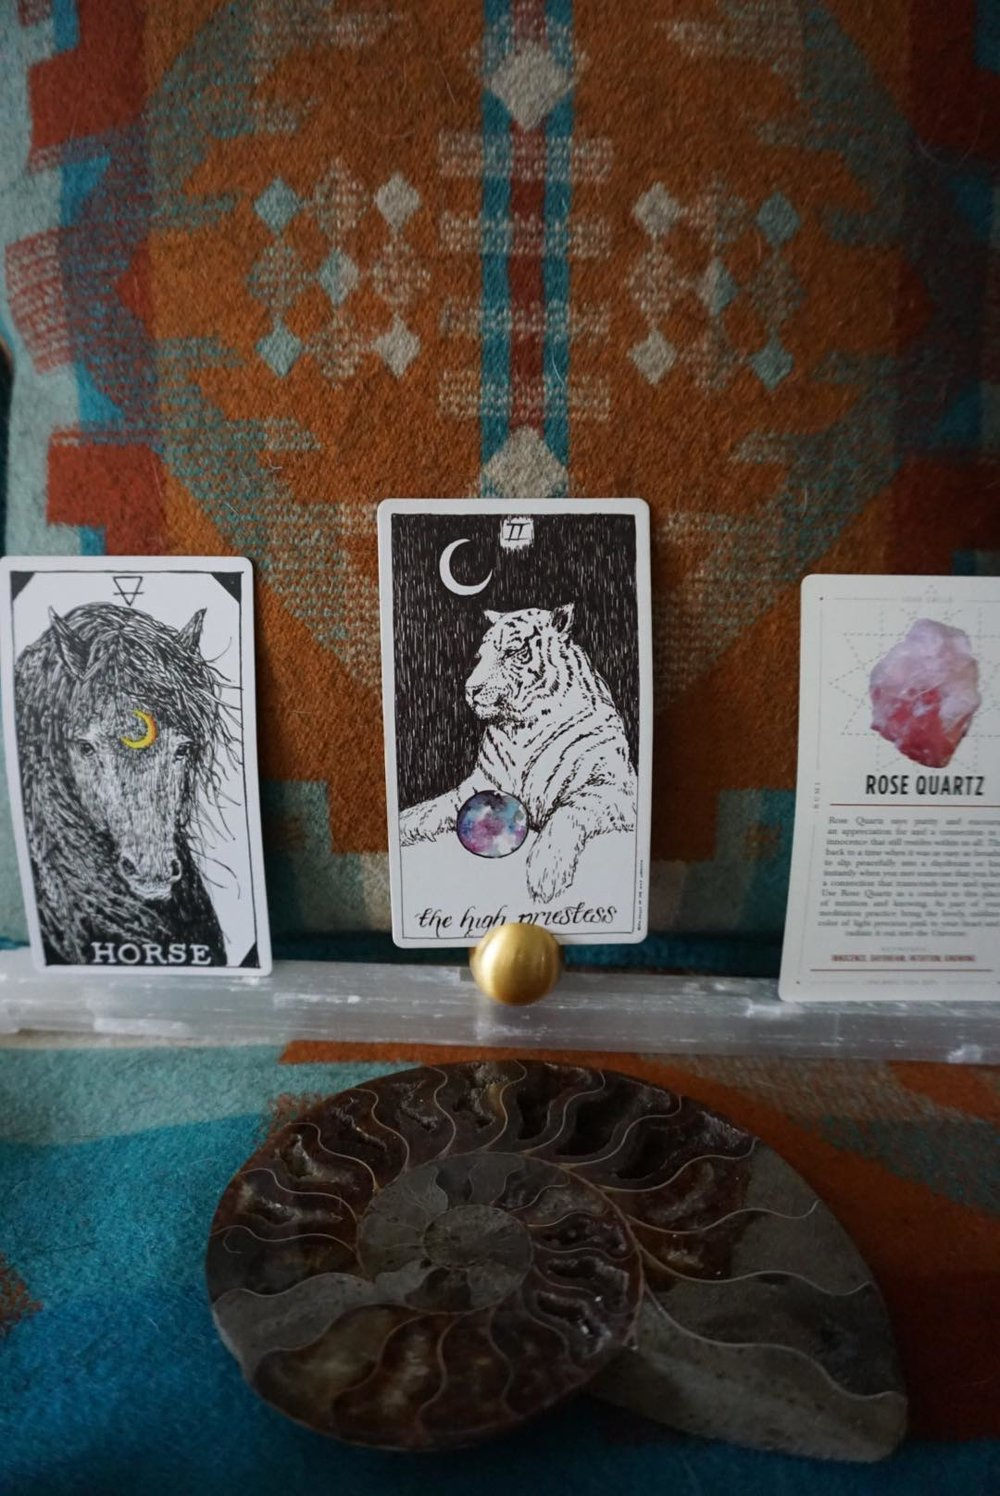 Aquarius & Aquarius Rising - Ride your intuition into the wild freedom of your heart space..